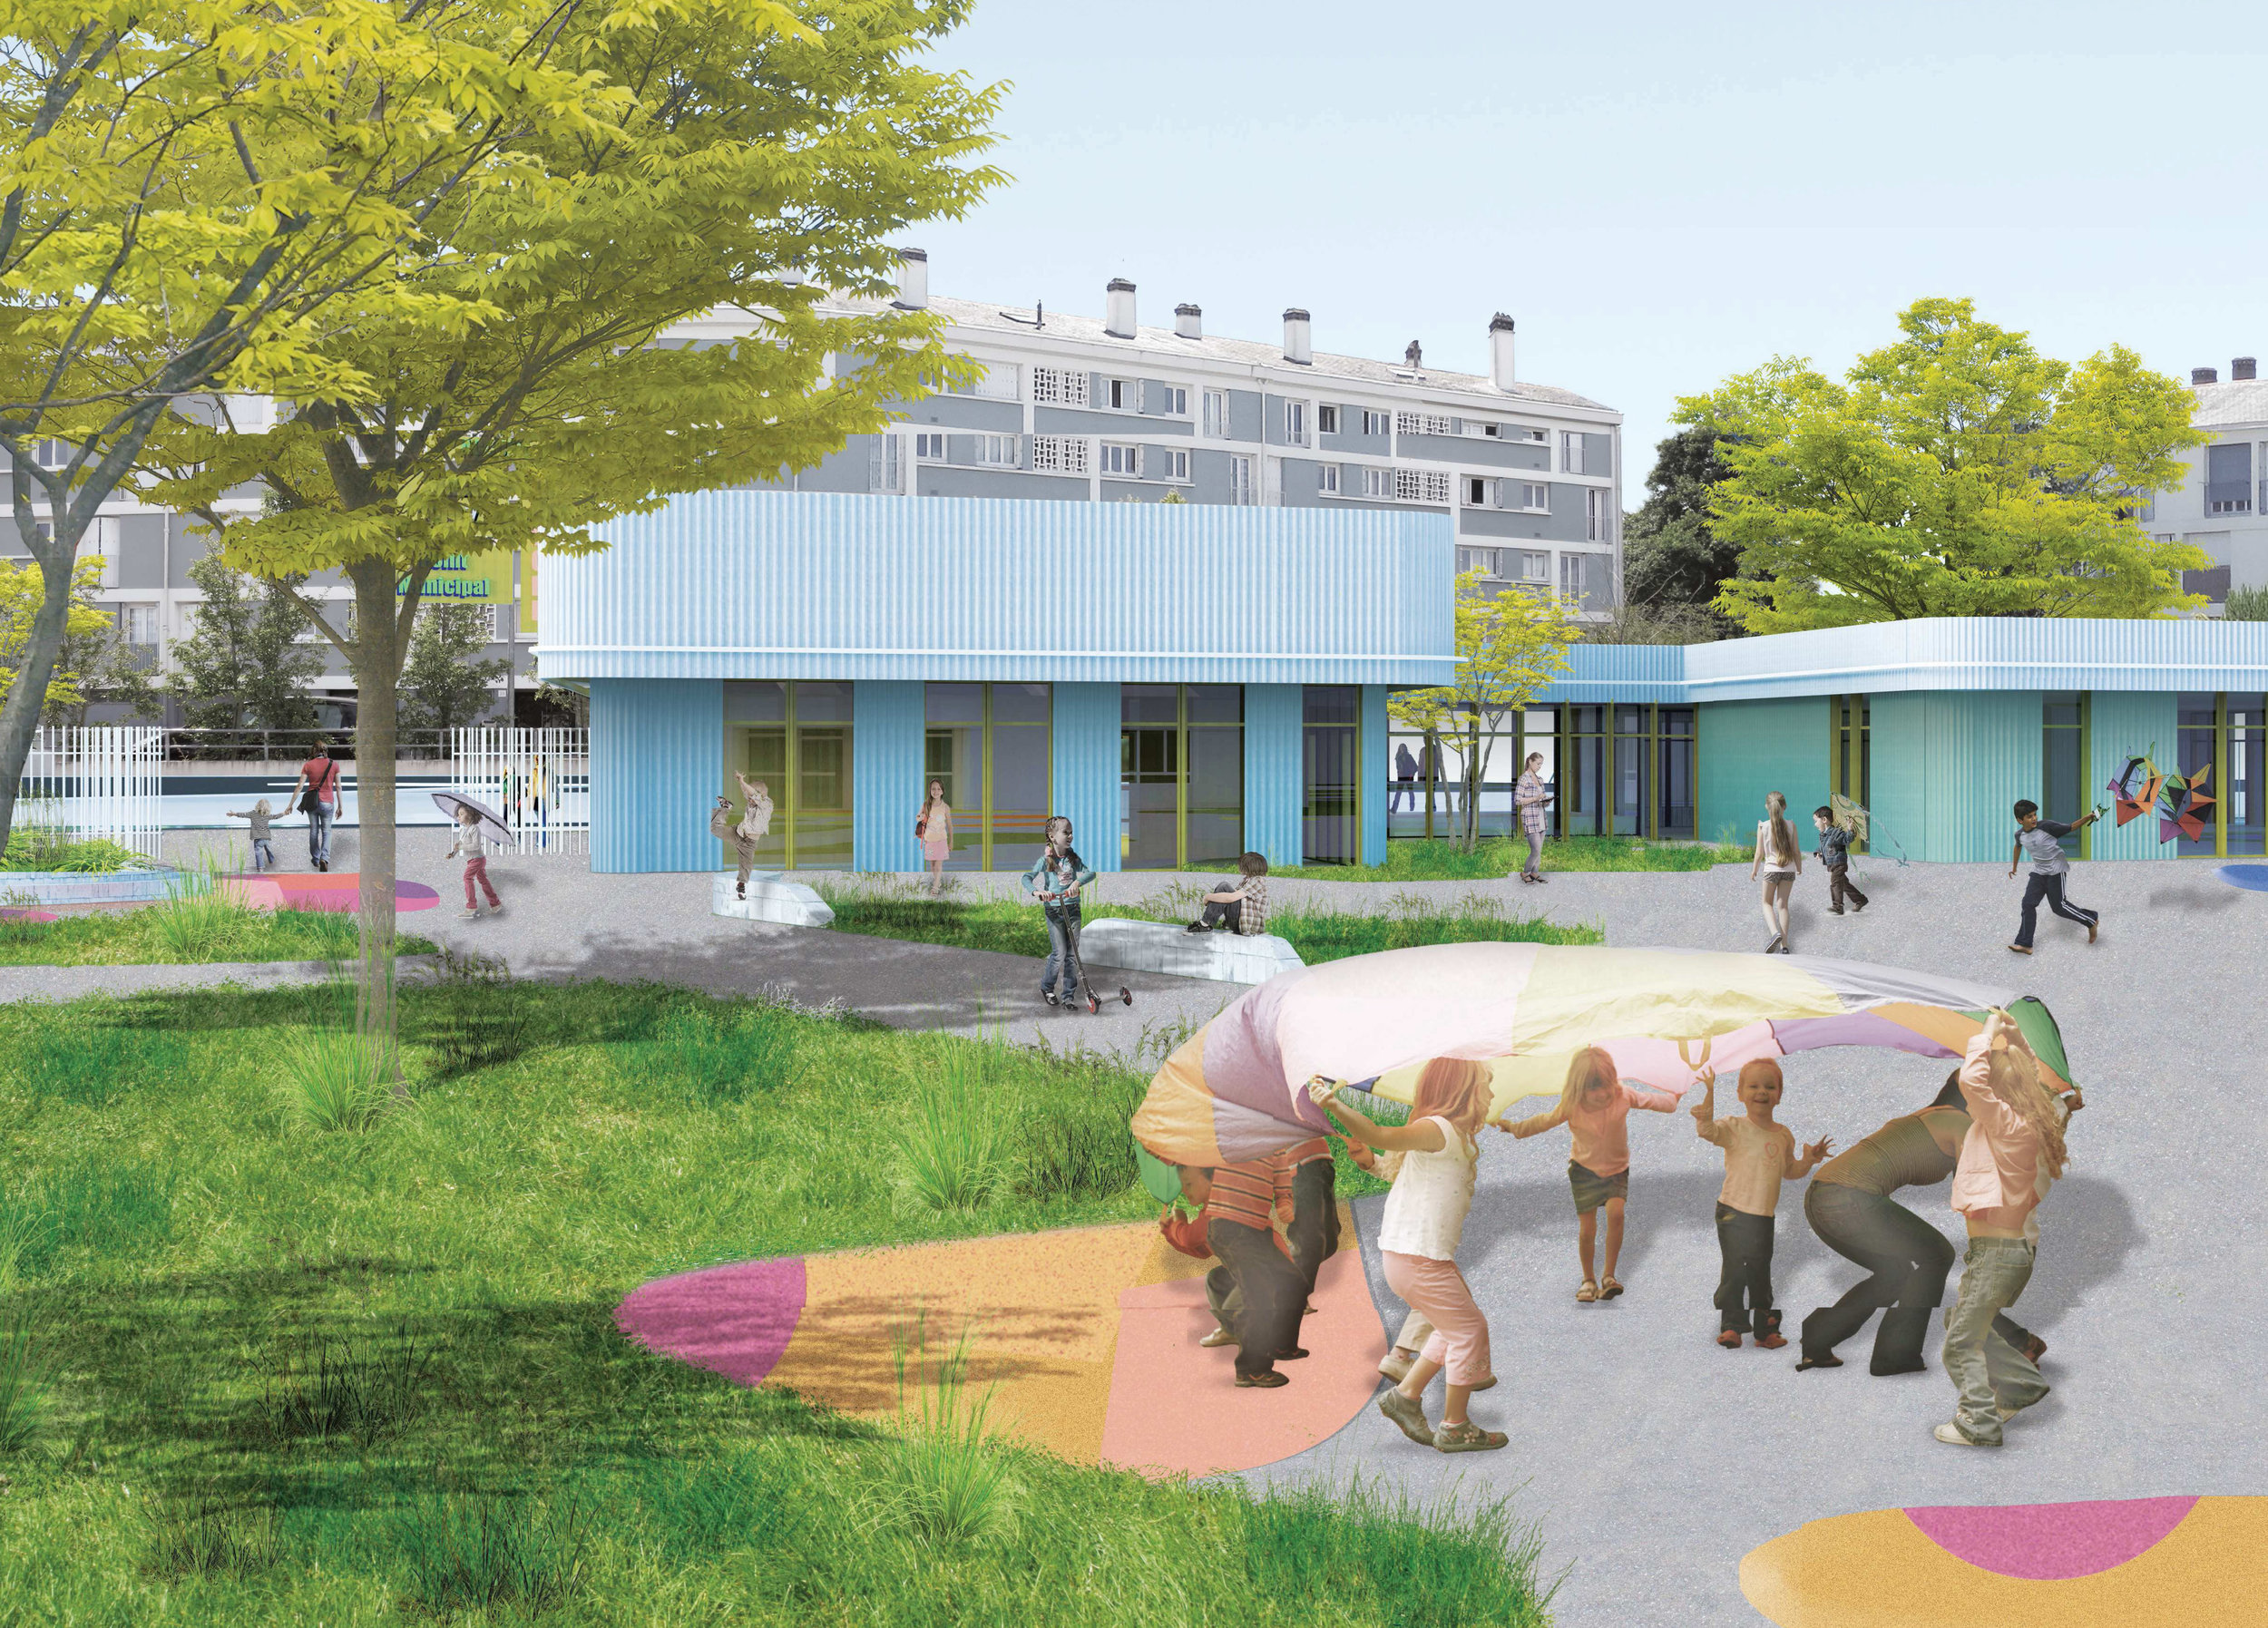 école_saint_nazaire_public_outdoor_design_christophe_gautrand_paysagiste_4.jpg